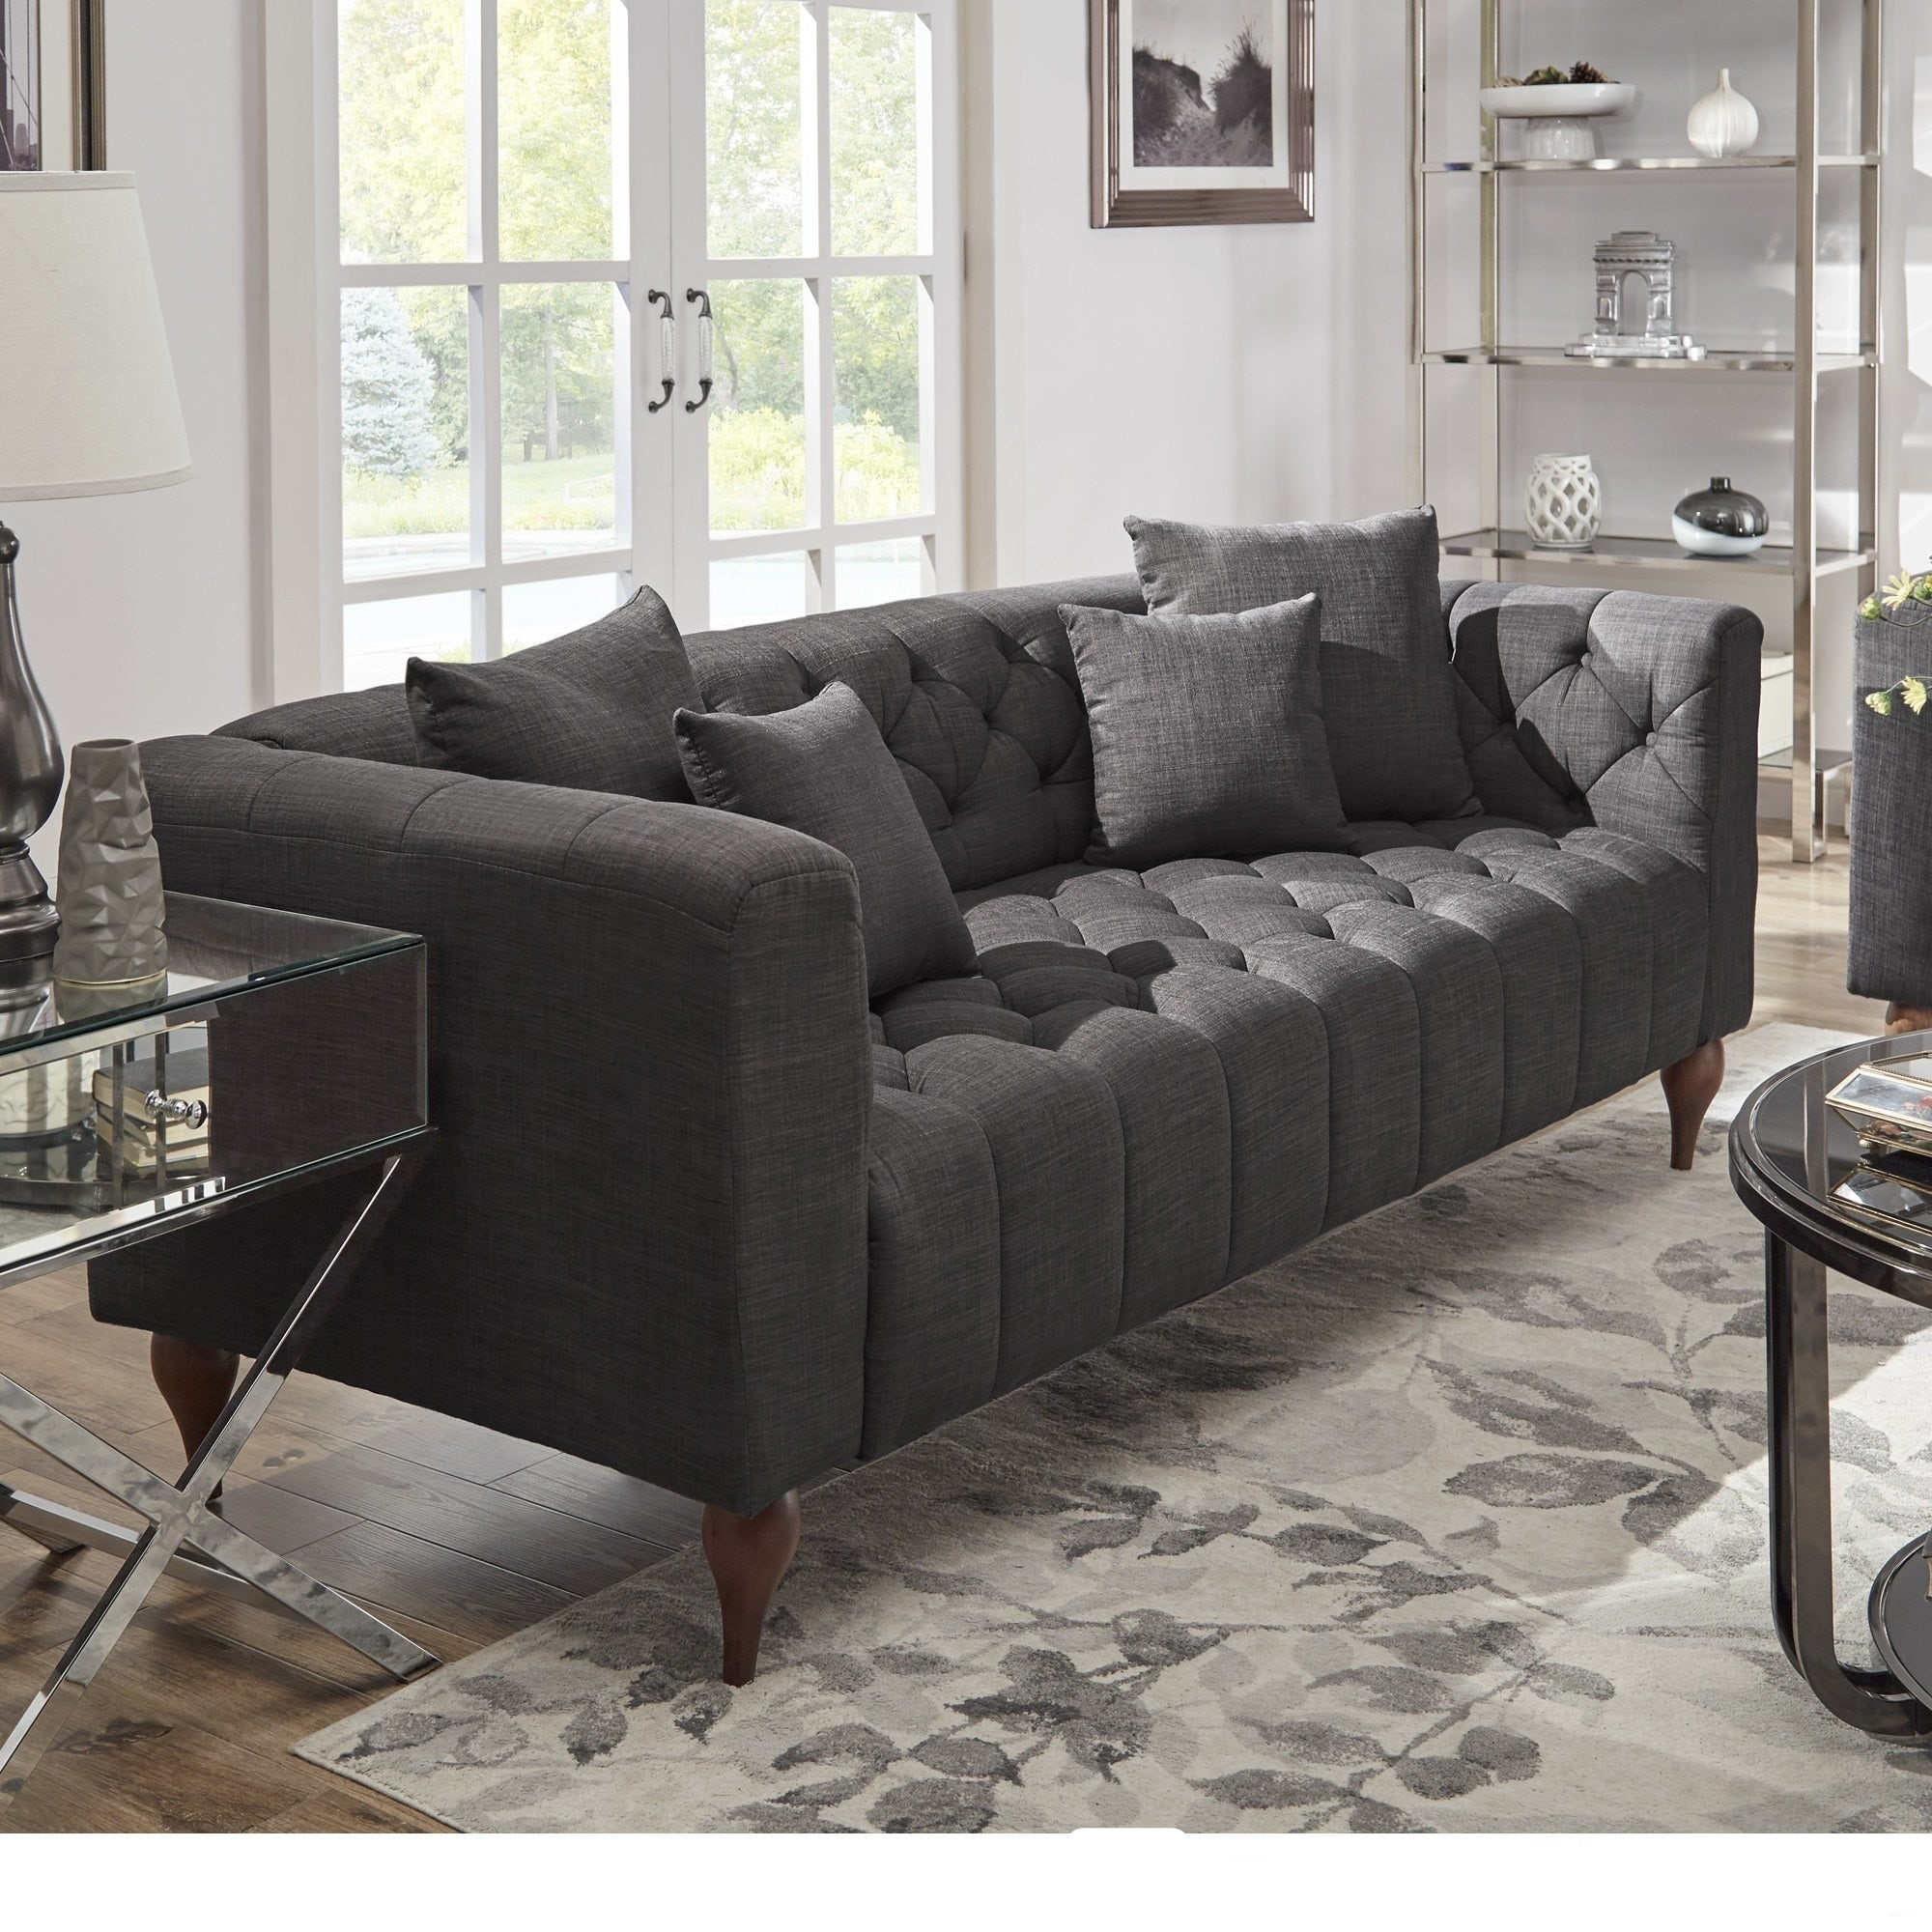 Sectional Couch L Shaped Corner Sofa Set Wholesale Upholstered Sofas Buy Sofa Set Furniture Living Room Sofa Set L Shaped Sofa Set Product On Alibaba Com